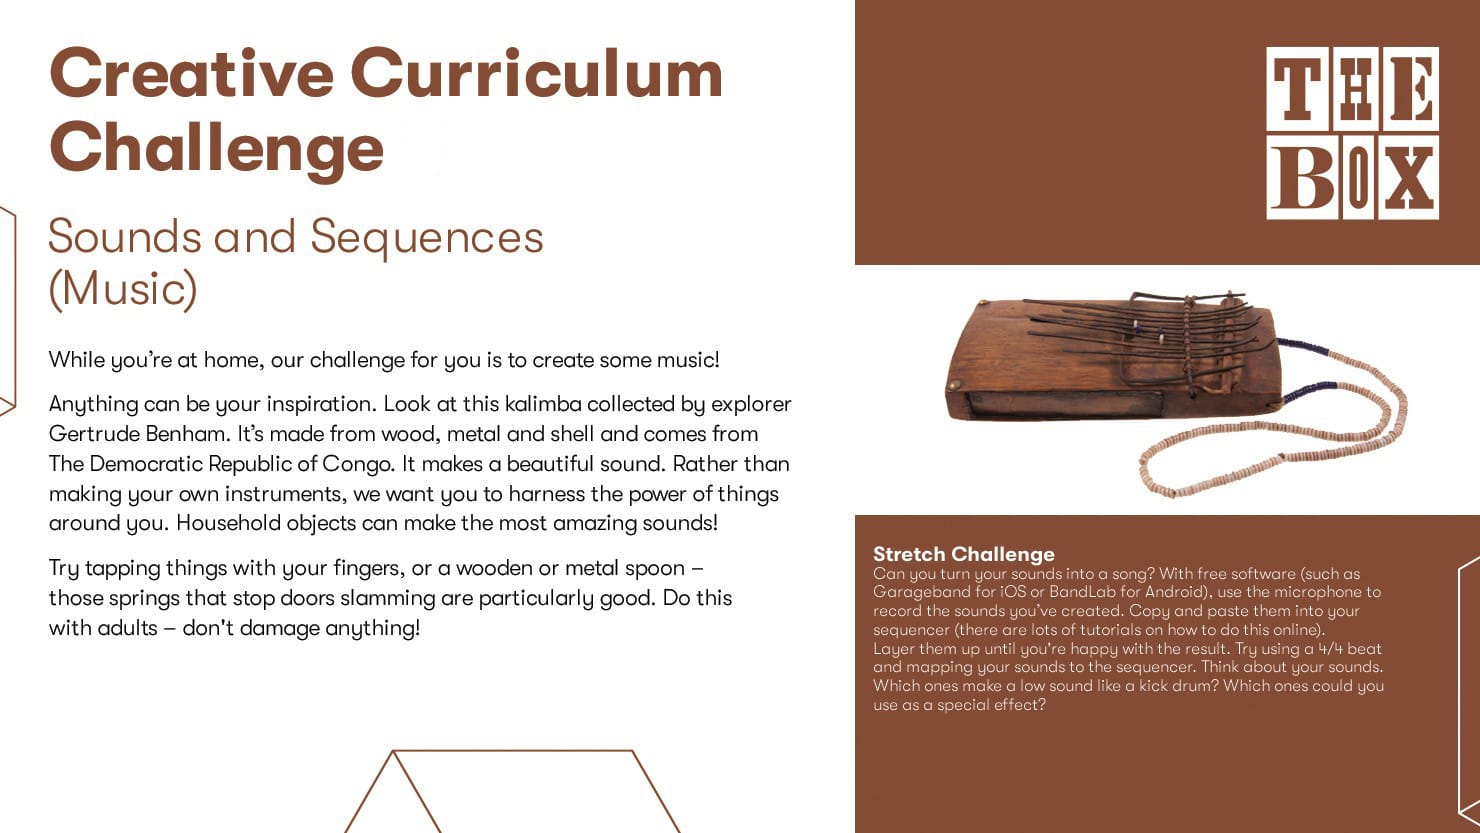 Graphic for The Box's music curriculum challenge